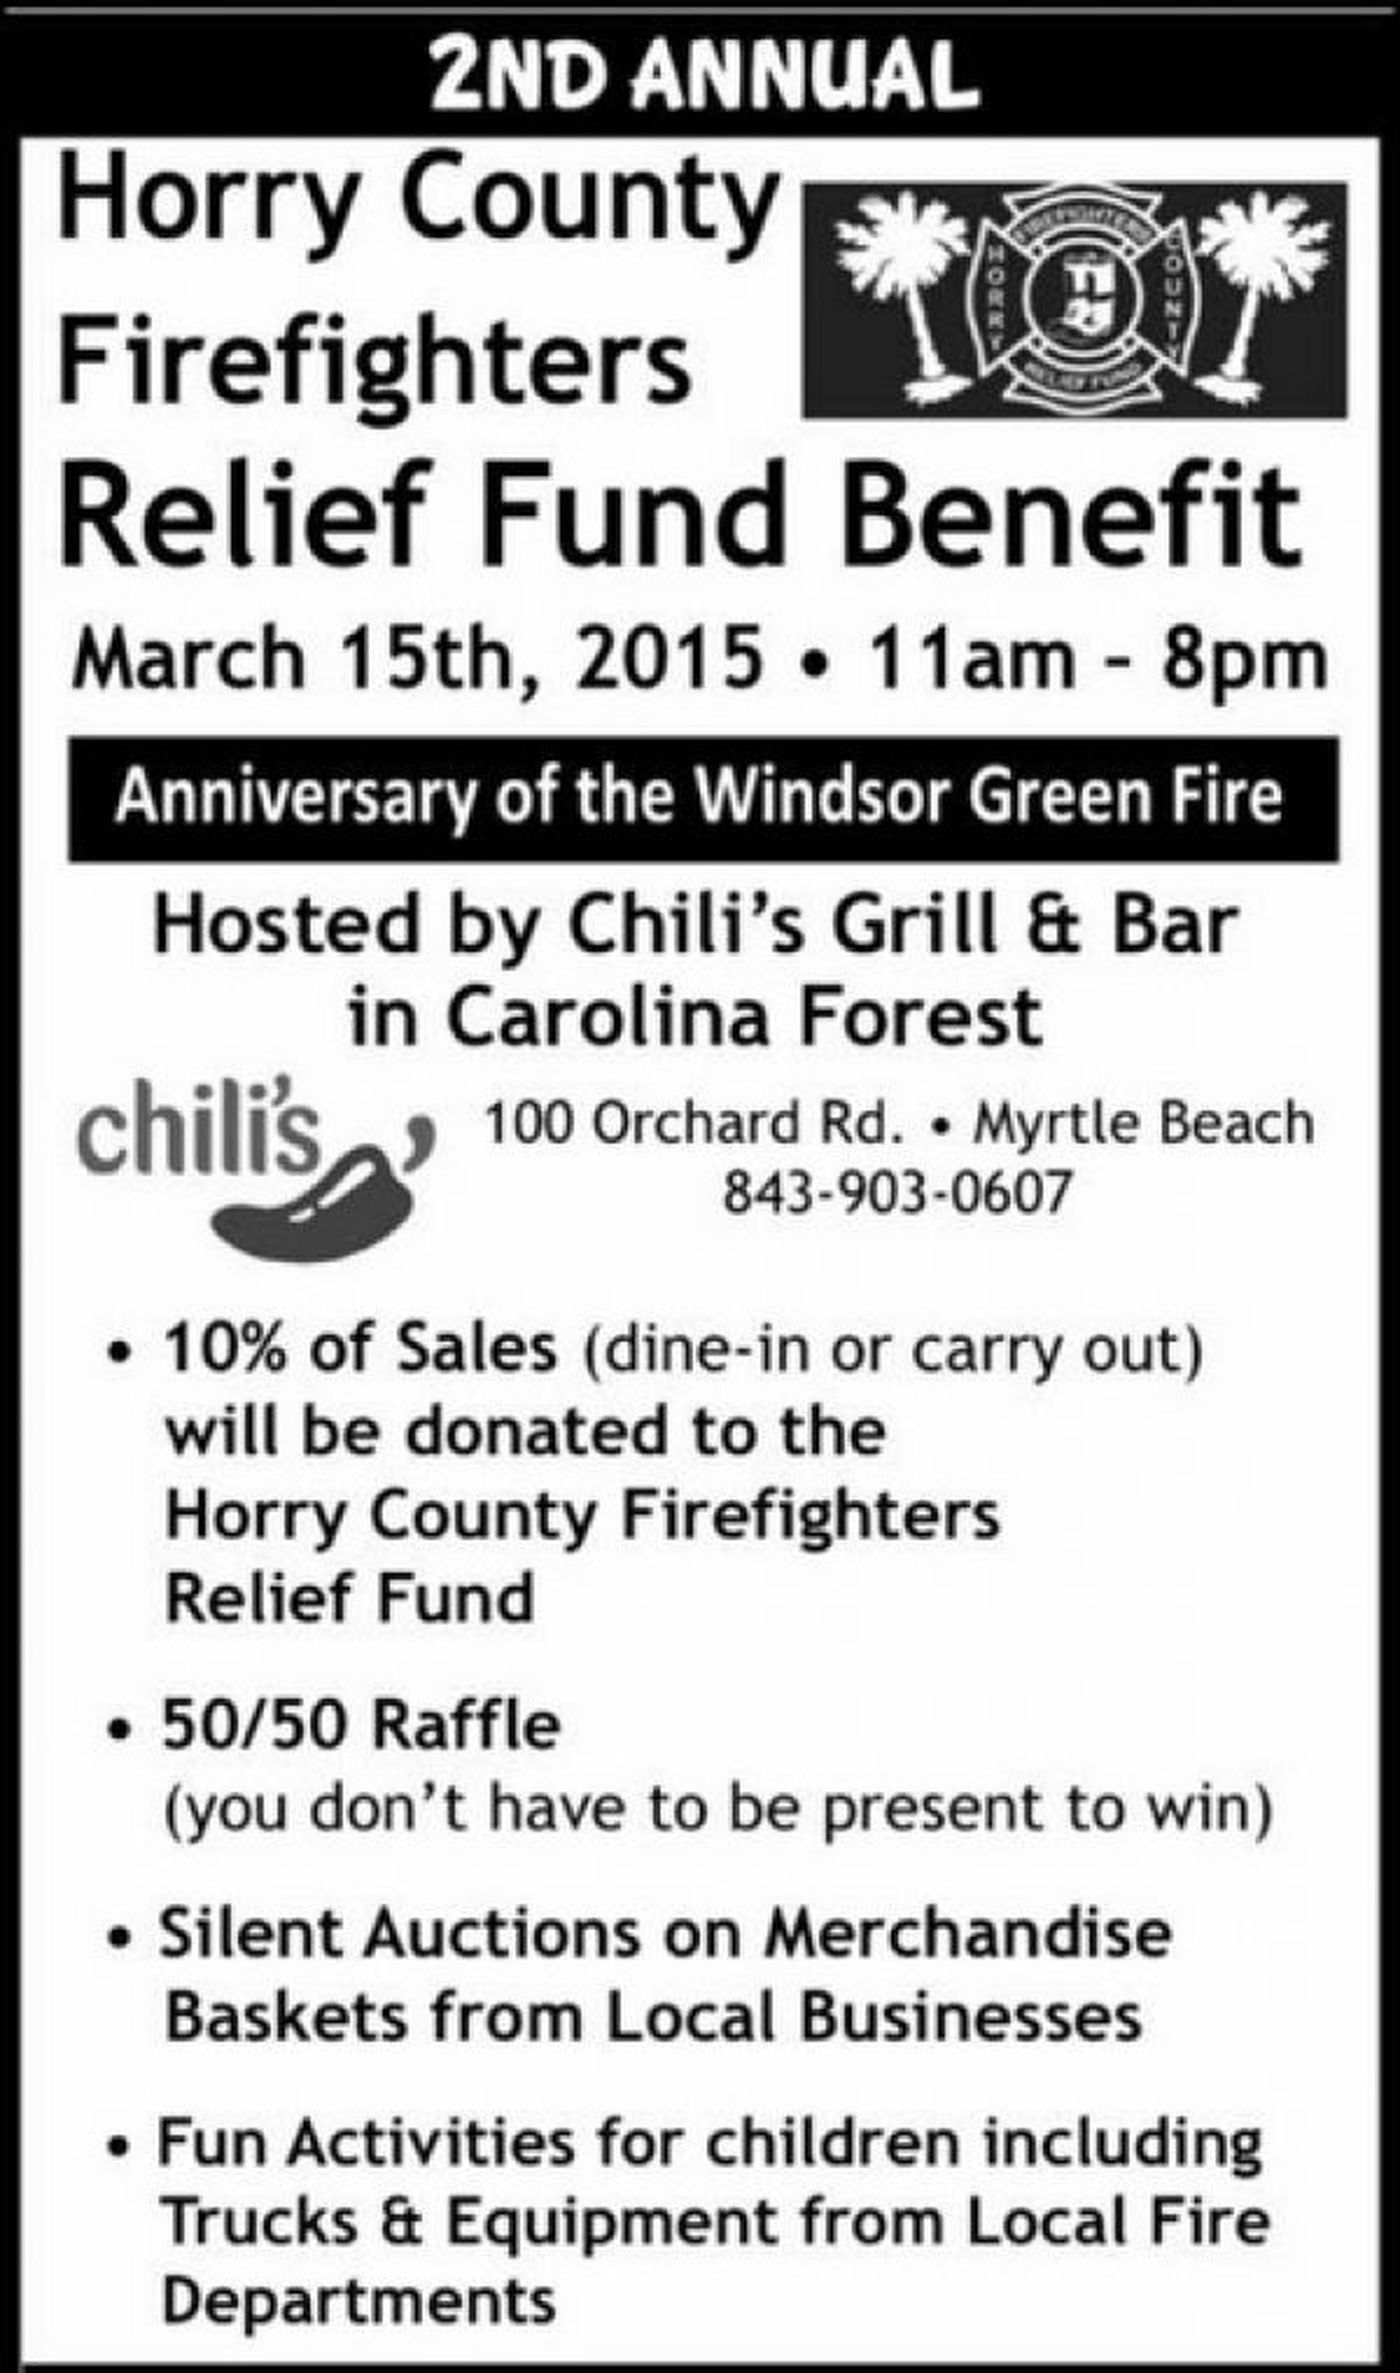 Firefighter Relief Fund benefit to be held on anniversary